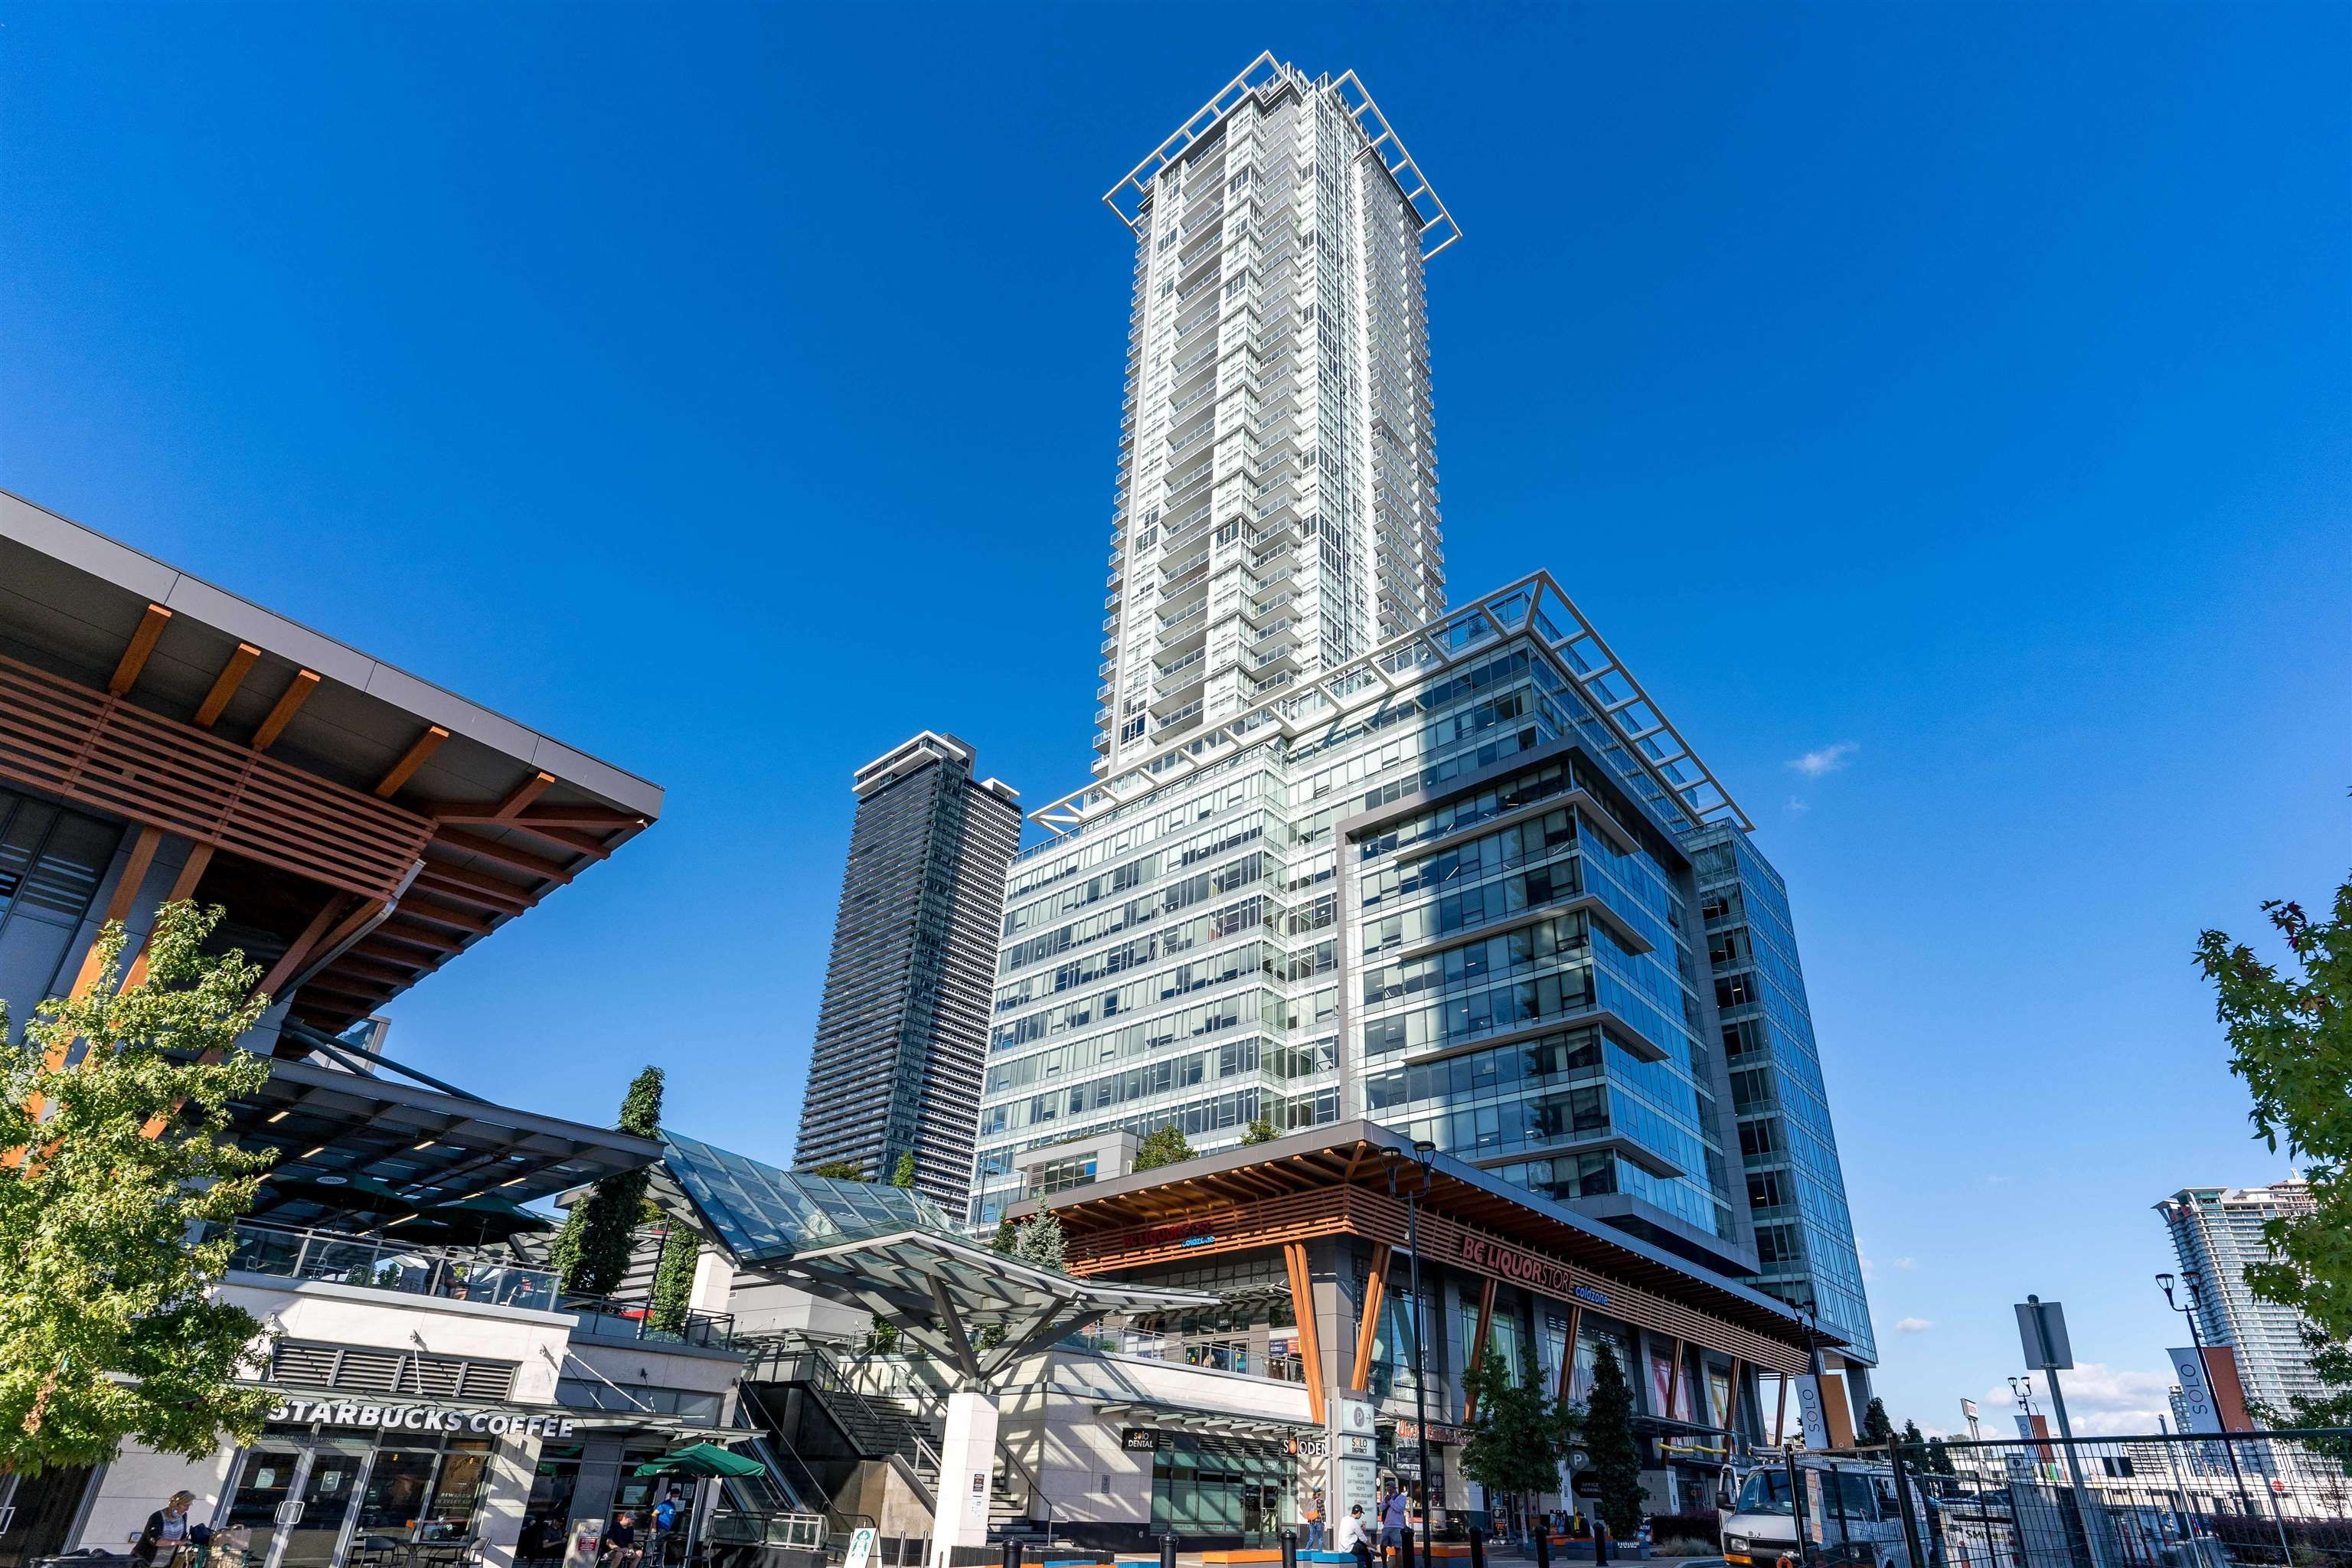 """Main Photo: 2703 4485 SKYLINE Drive in Burnaby: Brentwood Park Condo for sale in """"SOLO DISTRICT 2 - ALTUS"""" (Burnaby North)  : MLS®# R2617885"""